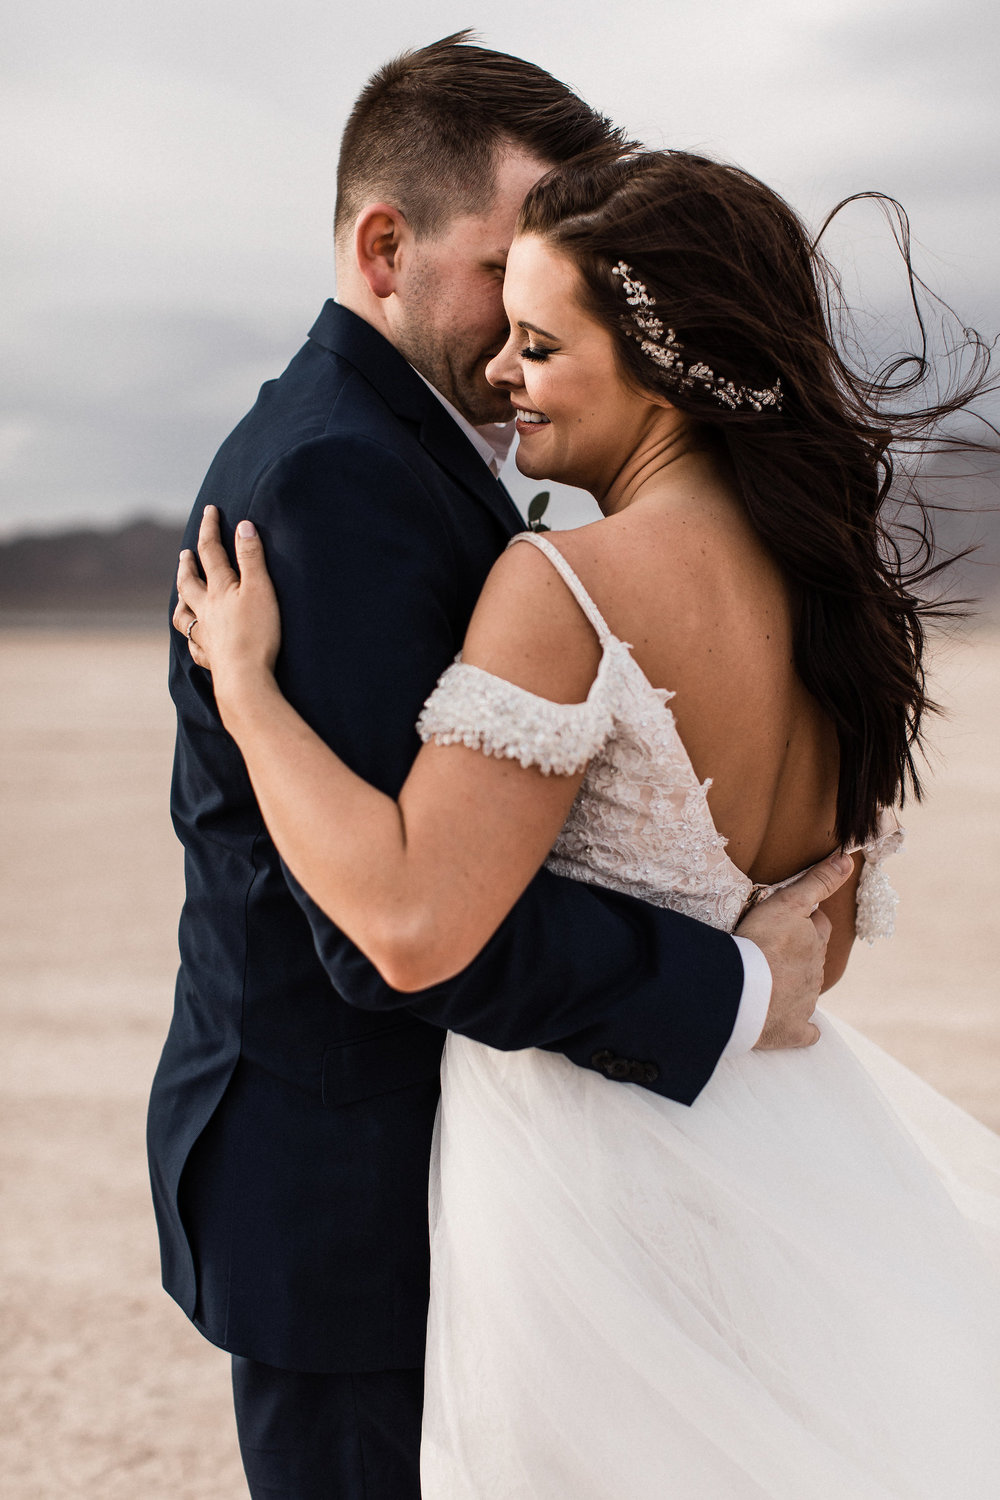 las vegas dry lake bed florapop wedding00024.jpg